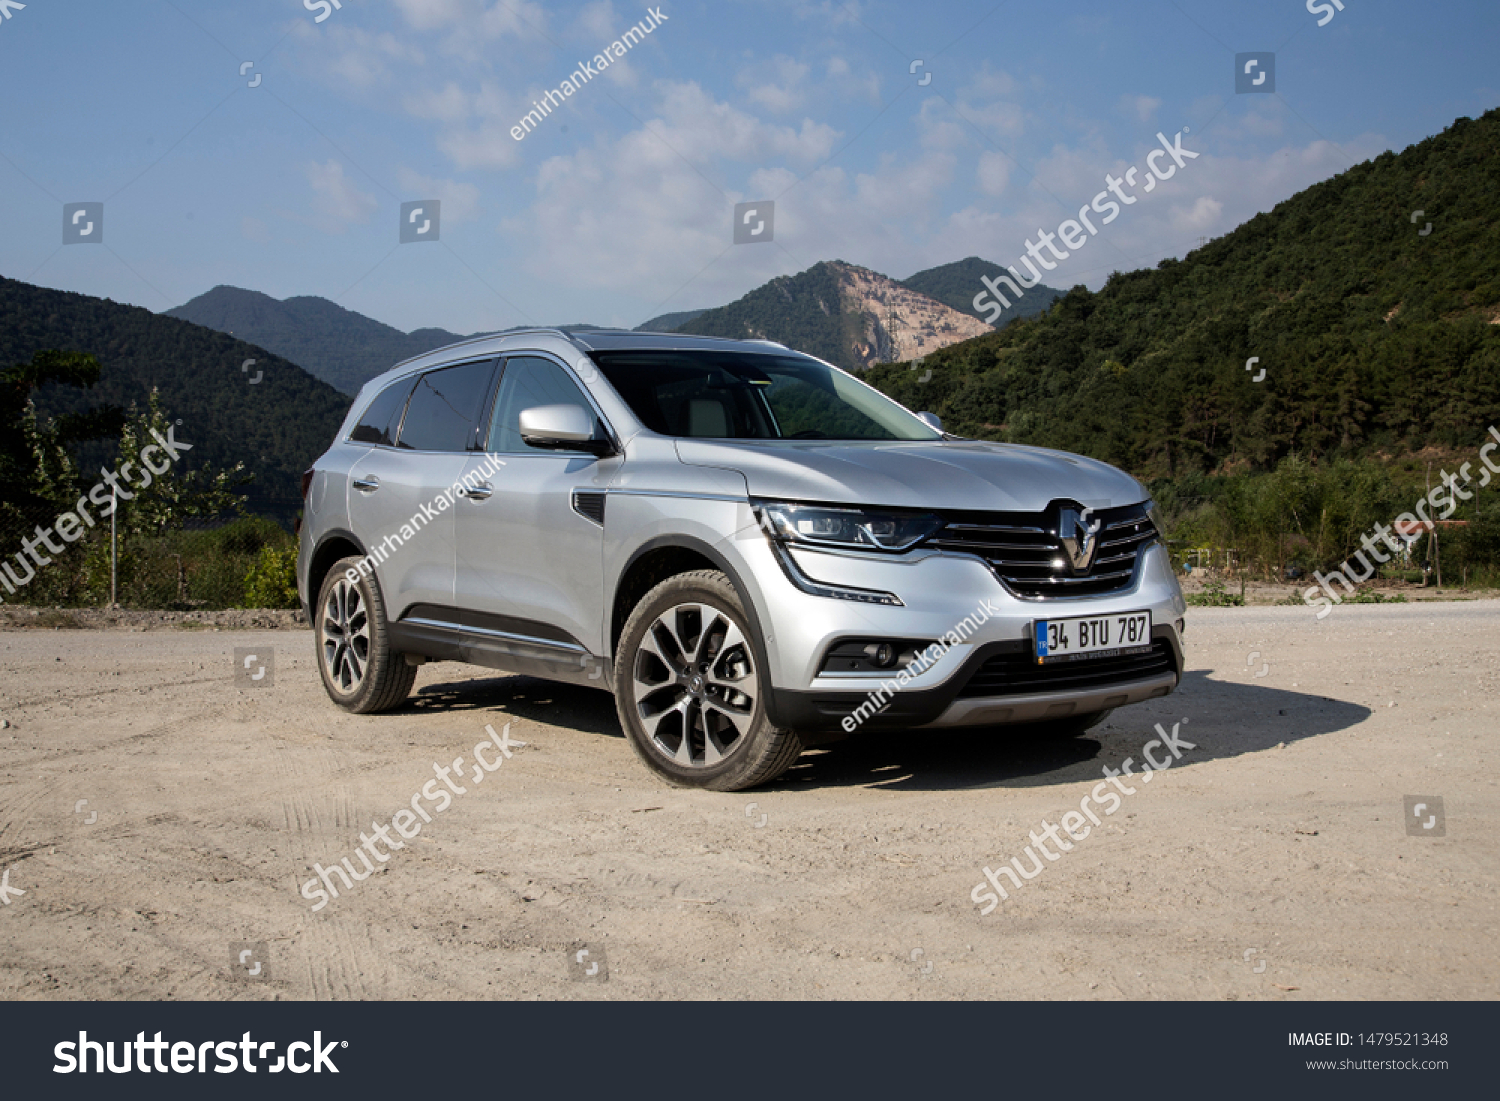 Istanbul/Turkey - August 1 2019 : Renault Koleos is a compact crossover SUV, uses the Renault-Nissan Common Module Family (CMF-CD) modular platform. #1479521348